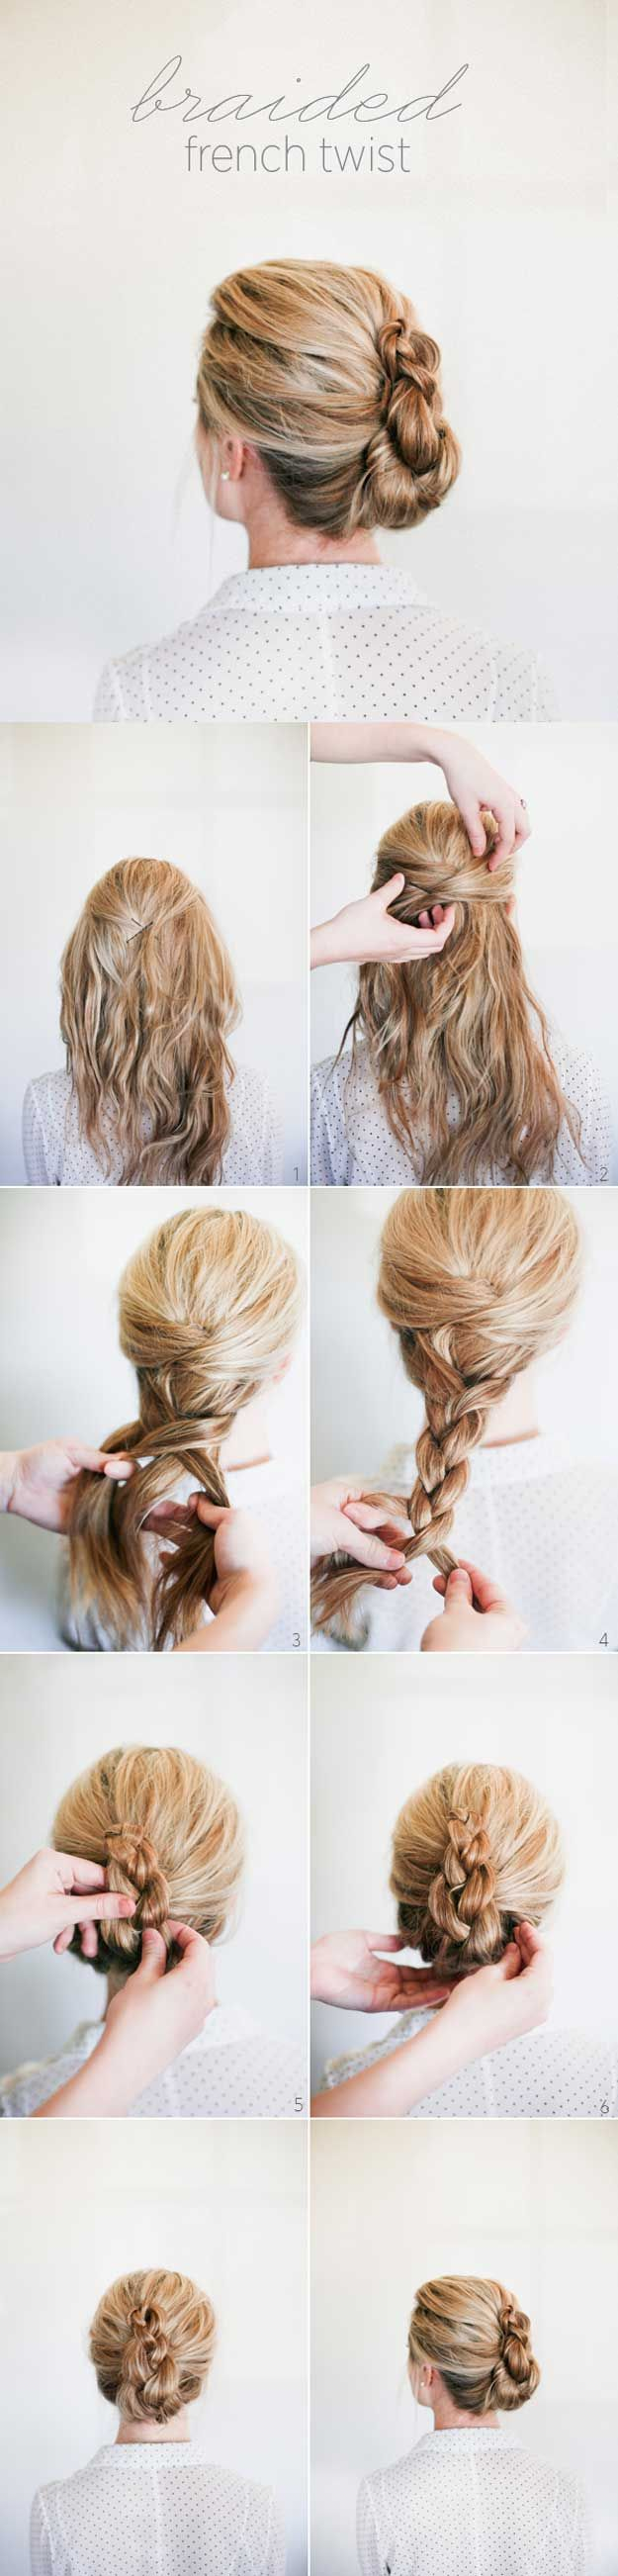 Best Hairstyles For Your 30s -Braided French Twist- Hair Dos And Don'ts For Your 30s, With The Best Haircuts For Women Over 30, Including Short Hairstyle Ideas, Flattering Haircuts For Medium Length Hair, And Tips And Tricks For Taming Long Hair In Your 30s. Low Maintenance Hair Styles And Looks For A 30 Year Old Woman. Simple Step By Step Tutorials And Tips For Hair Styles You Can Use To Look Younger And Feel Younger In Your 30s. Hair styles For Curly Hair And Straight Hair Can Be Easy If…